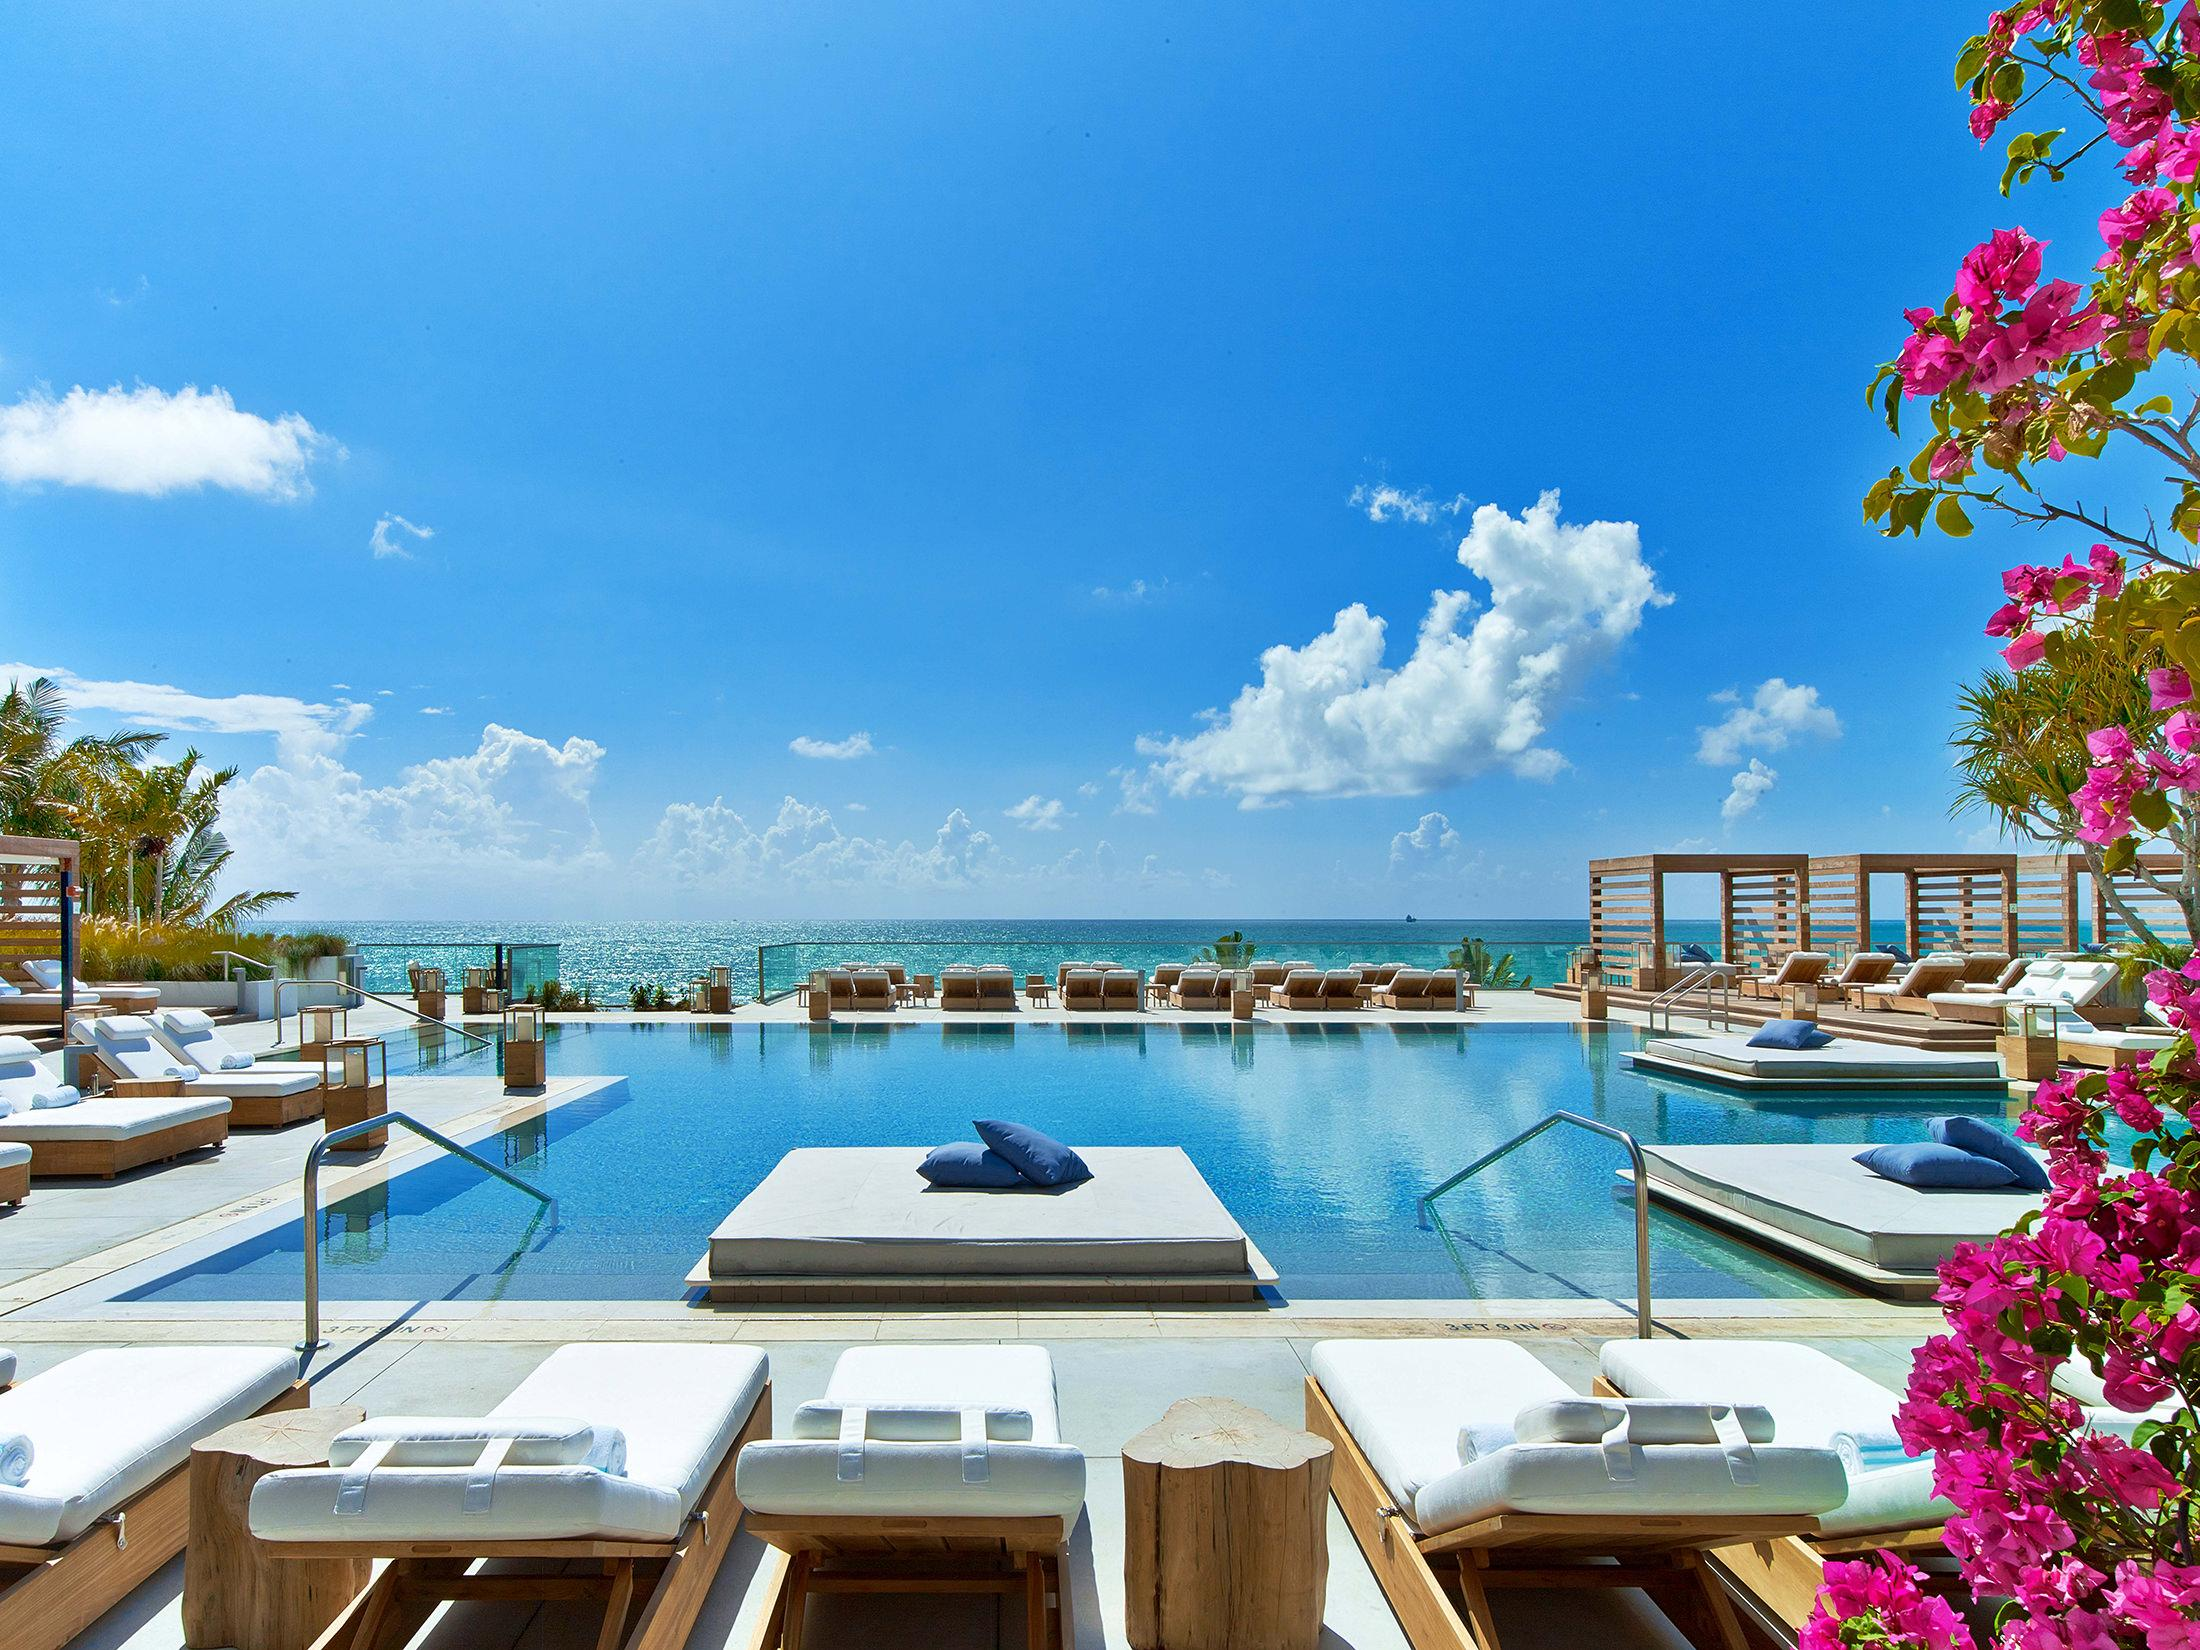 Main pool at South Beach